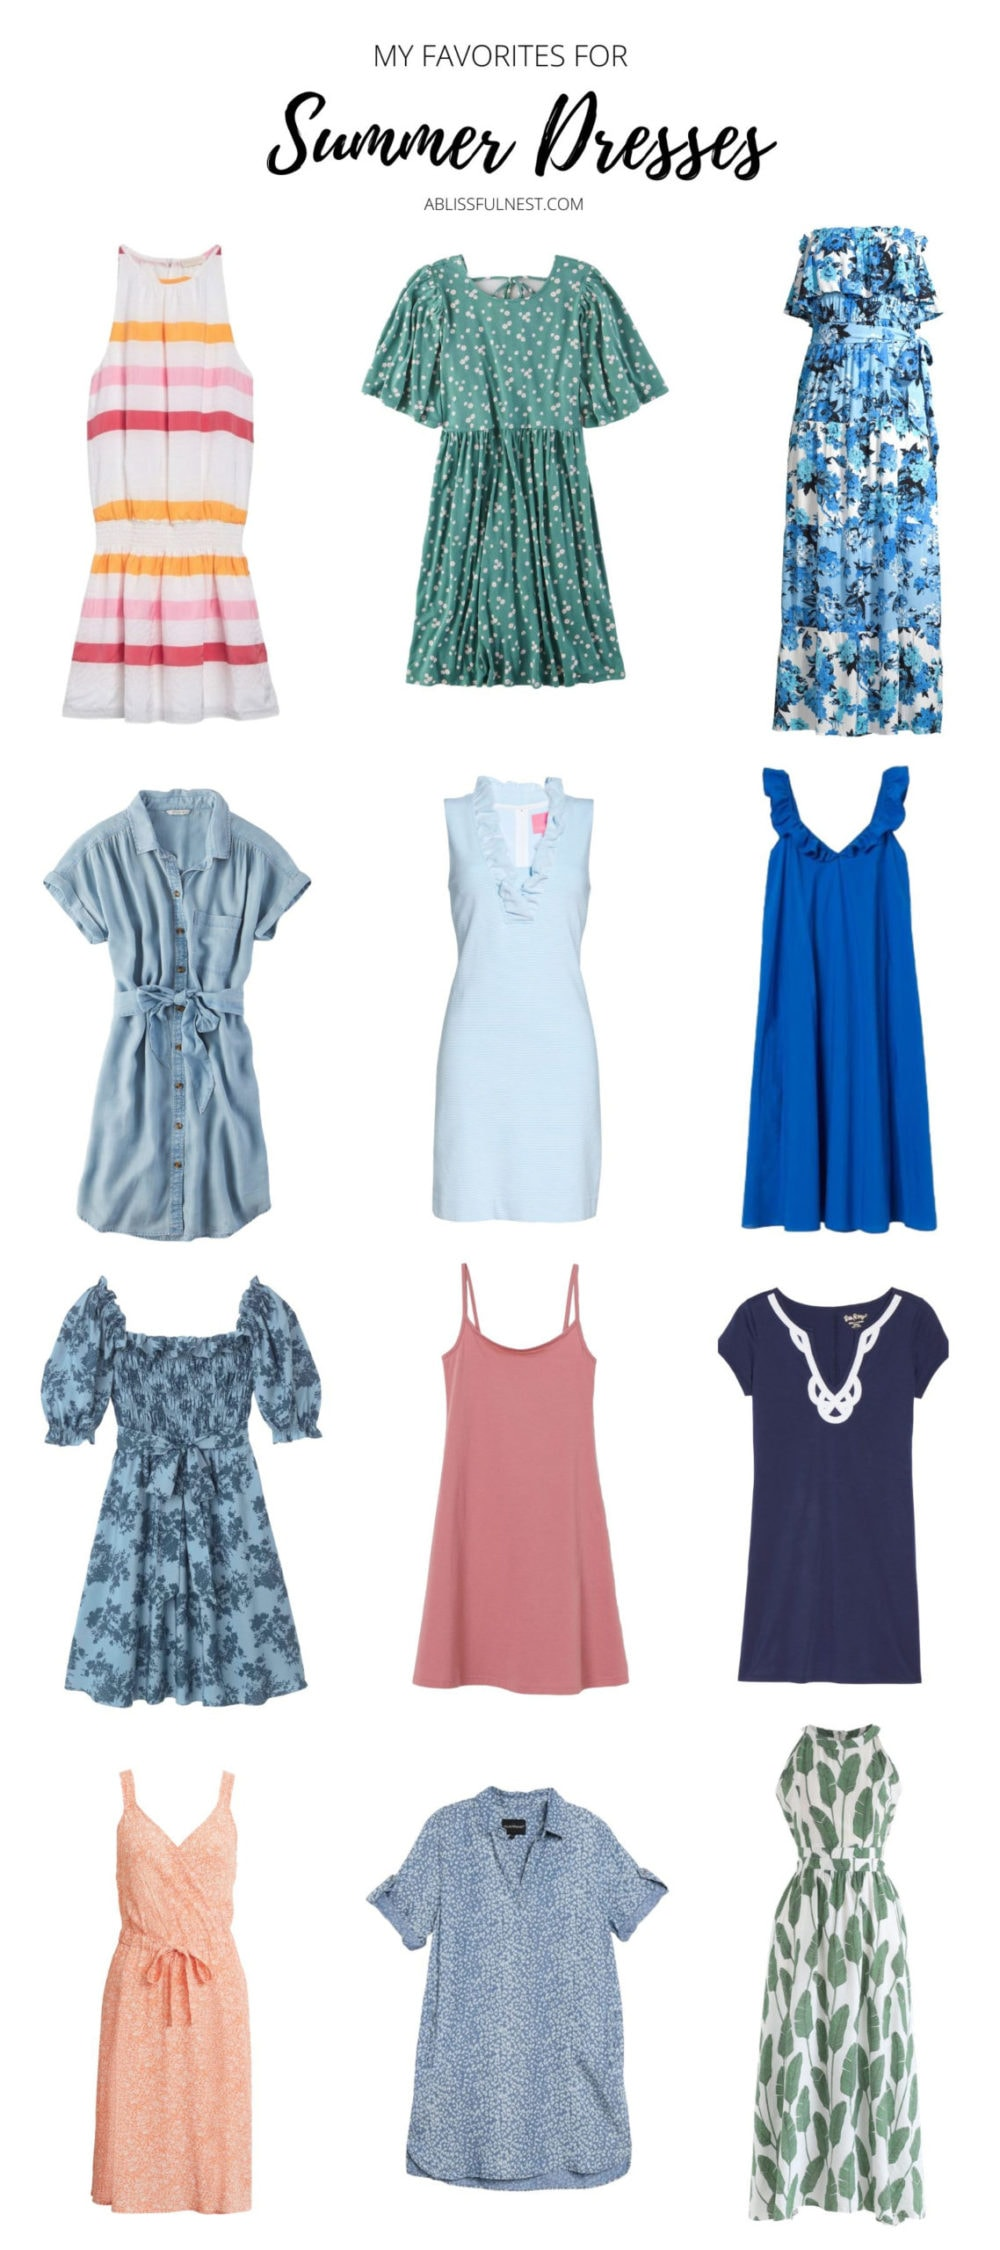 Casual summer dresses from short to maxi length and popular prints and colors. #ABlissfulNest #summer #summerclothes